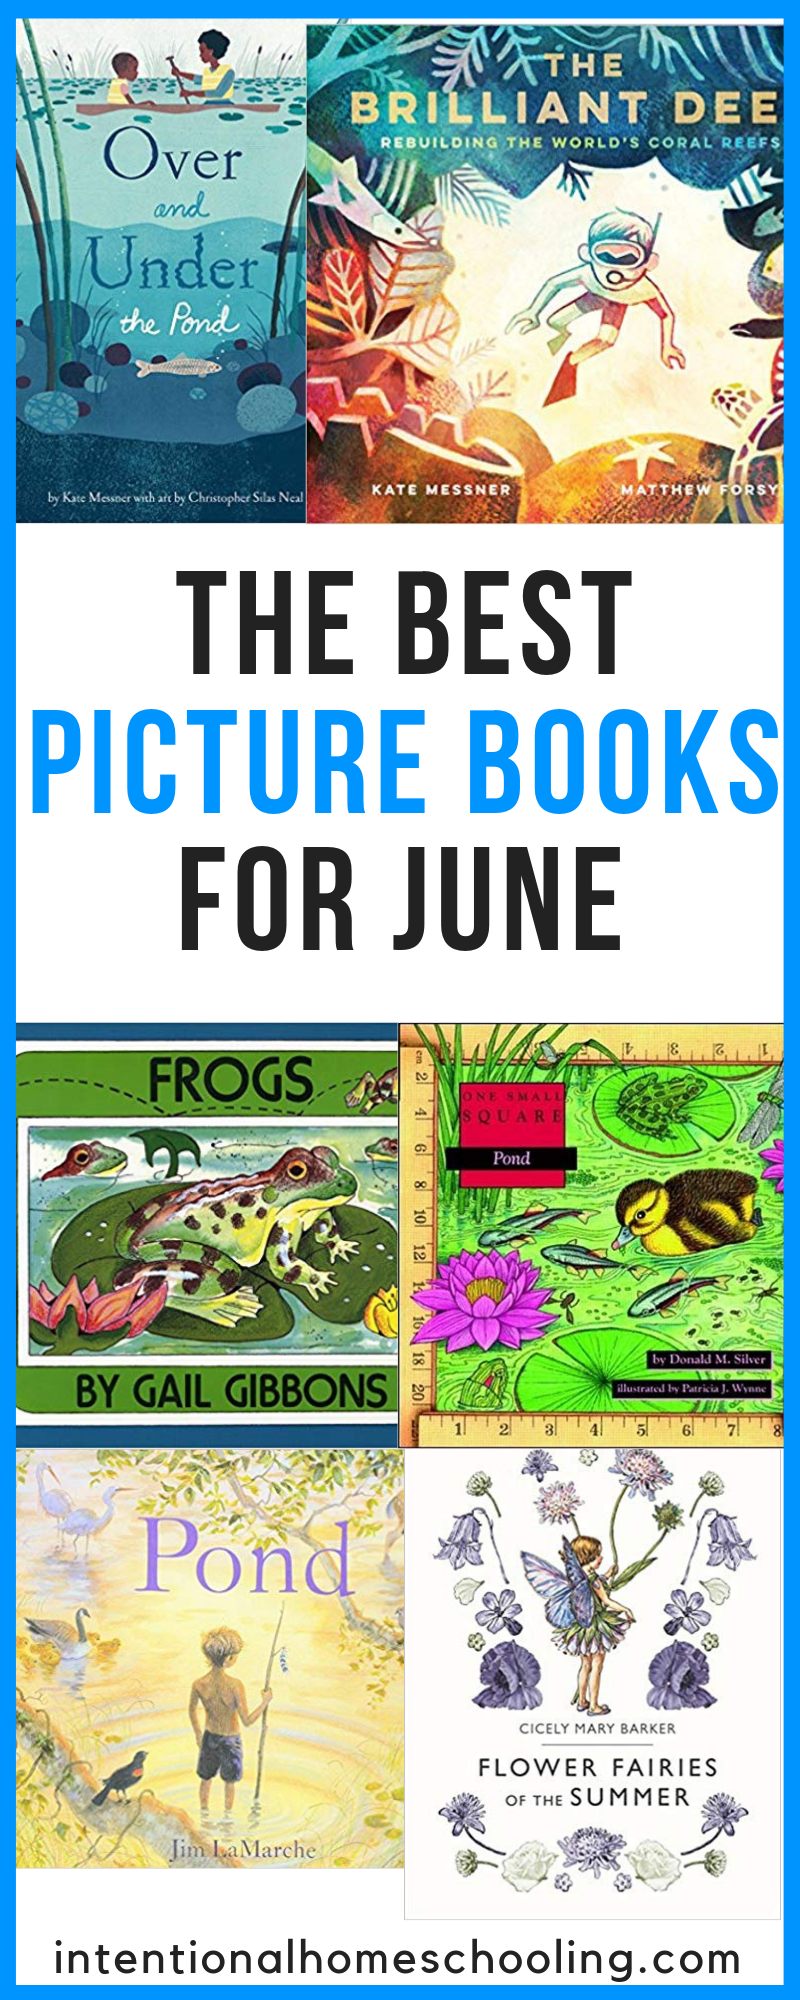 The Best Picture Books for June - summer picture books and water picture books